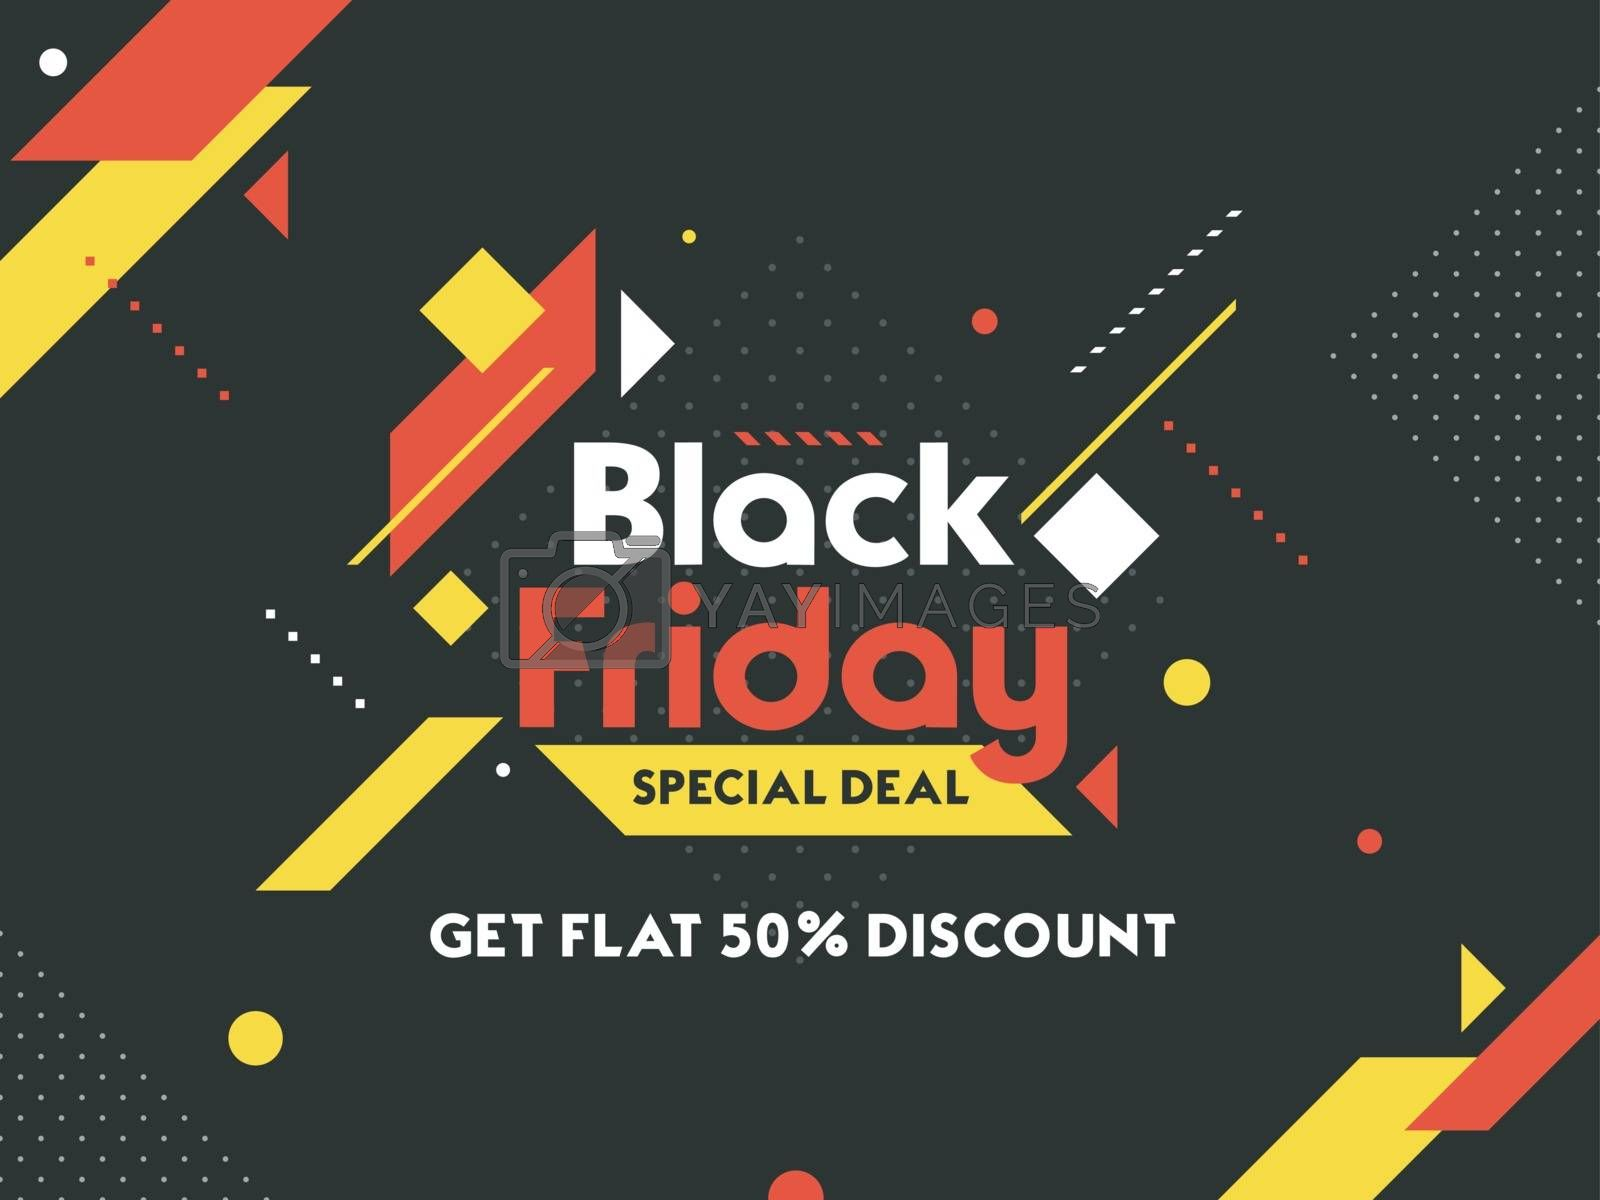 Get flat 50% discount on Black Friday Sale. Abstract black poster or banner design for advertisement.